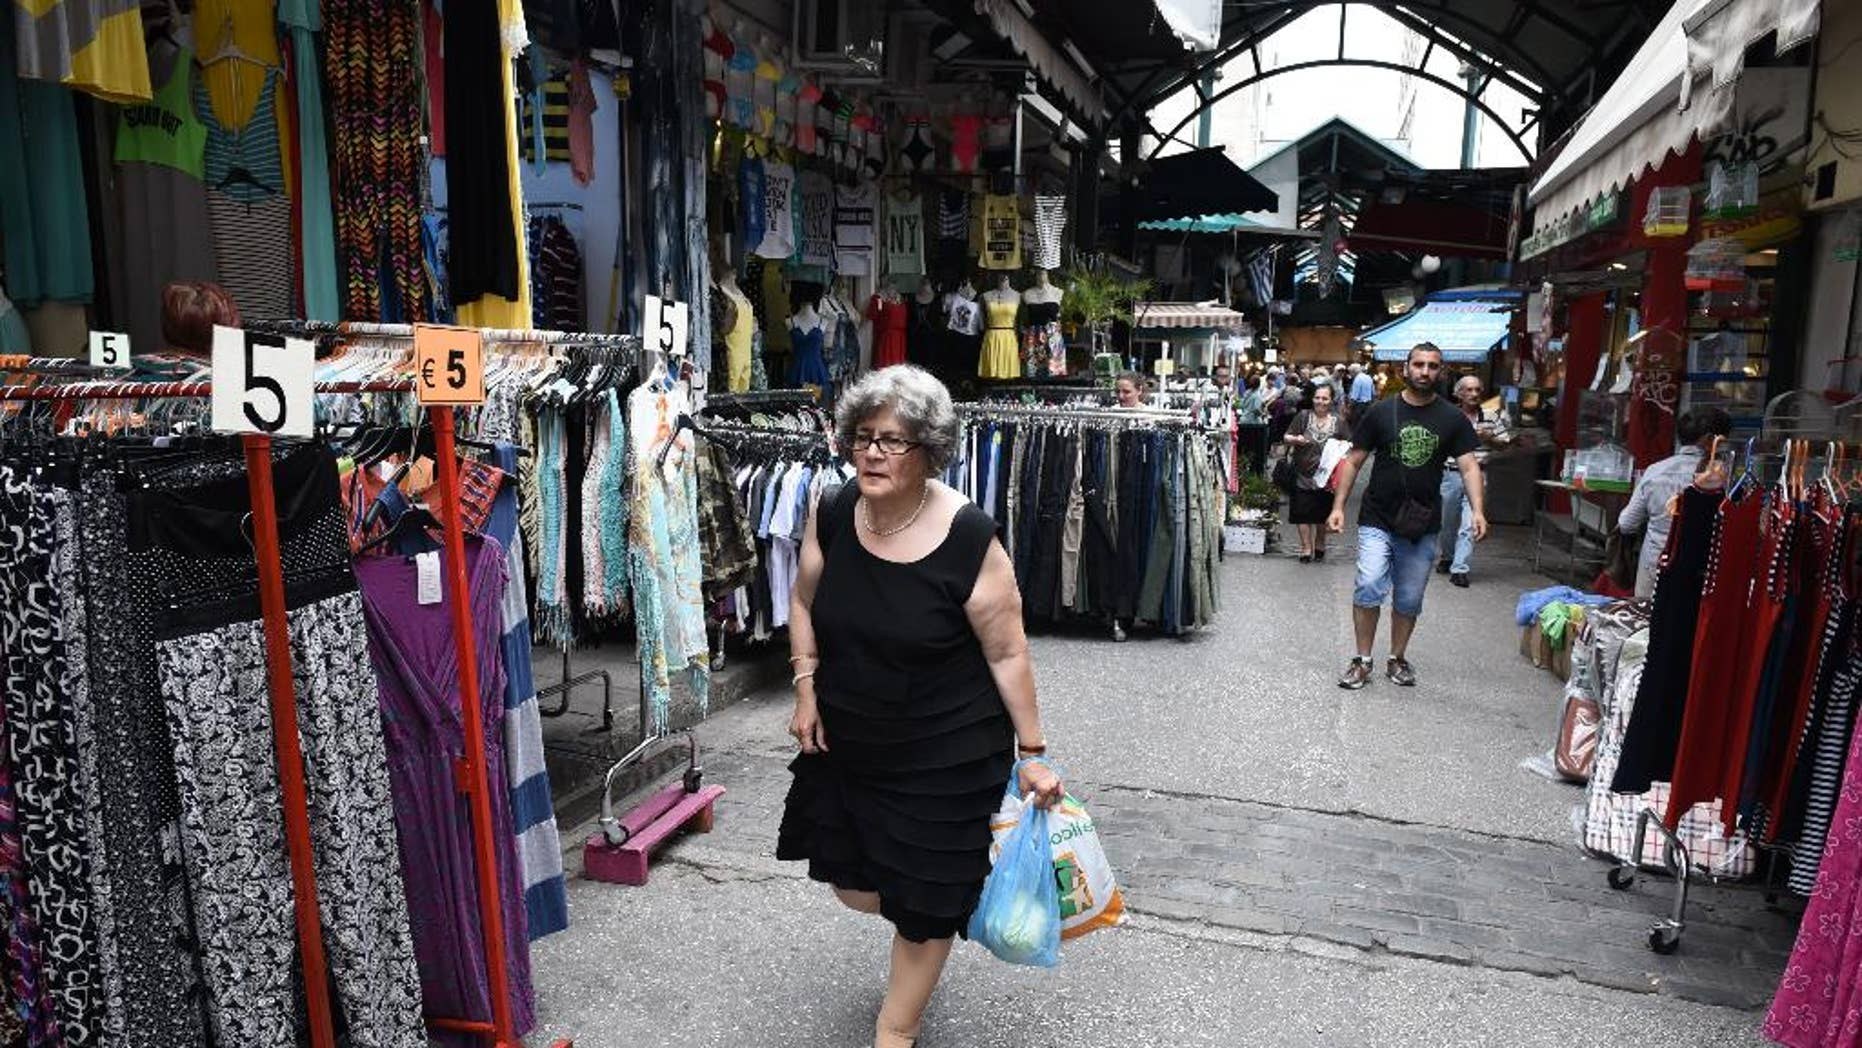 An elderly woman holds shopping bags as she leaves from a market area in the northern Greek port city of Thessaloniki, Wednesday, June 10, 2015. Greece has three weeks left to conclude a deal with its creditors before its bailout program expires at the end of the month. It is desperate for the disbursal of the final 7.2 billion euros in rescue loans, without which it cannot continue to repay its international debts. (AP Photo/Giannis Papanikos)